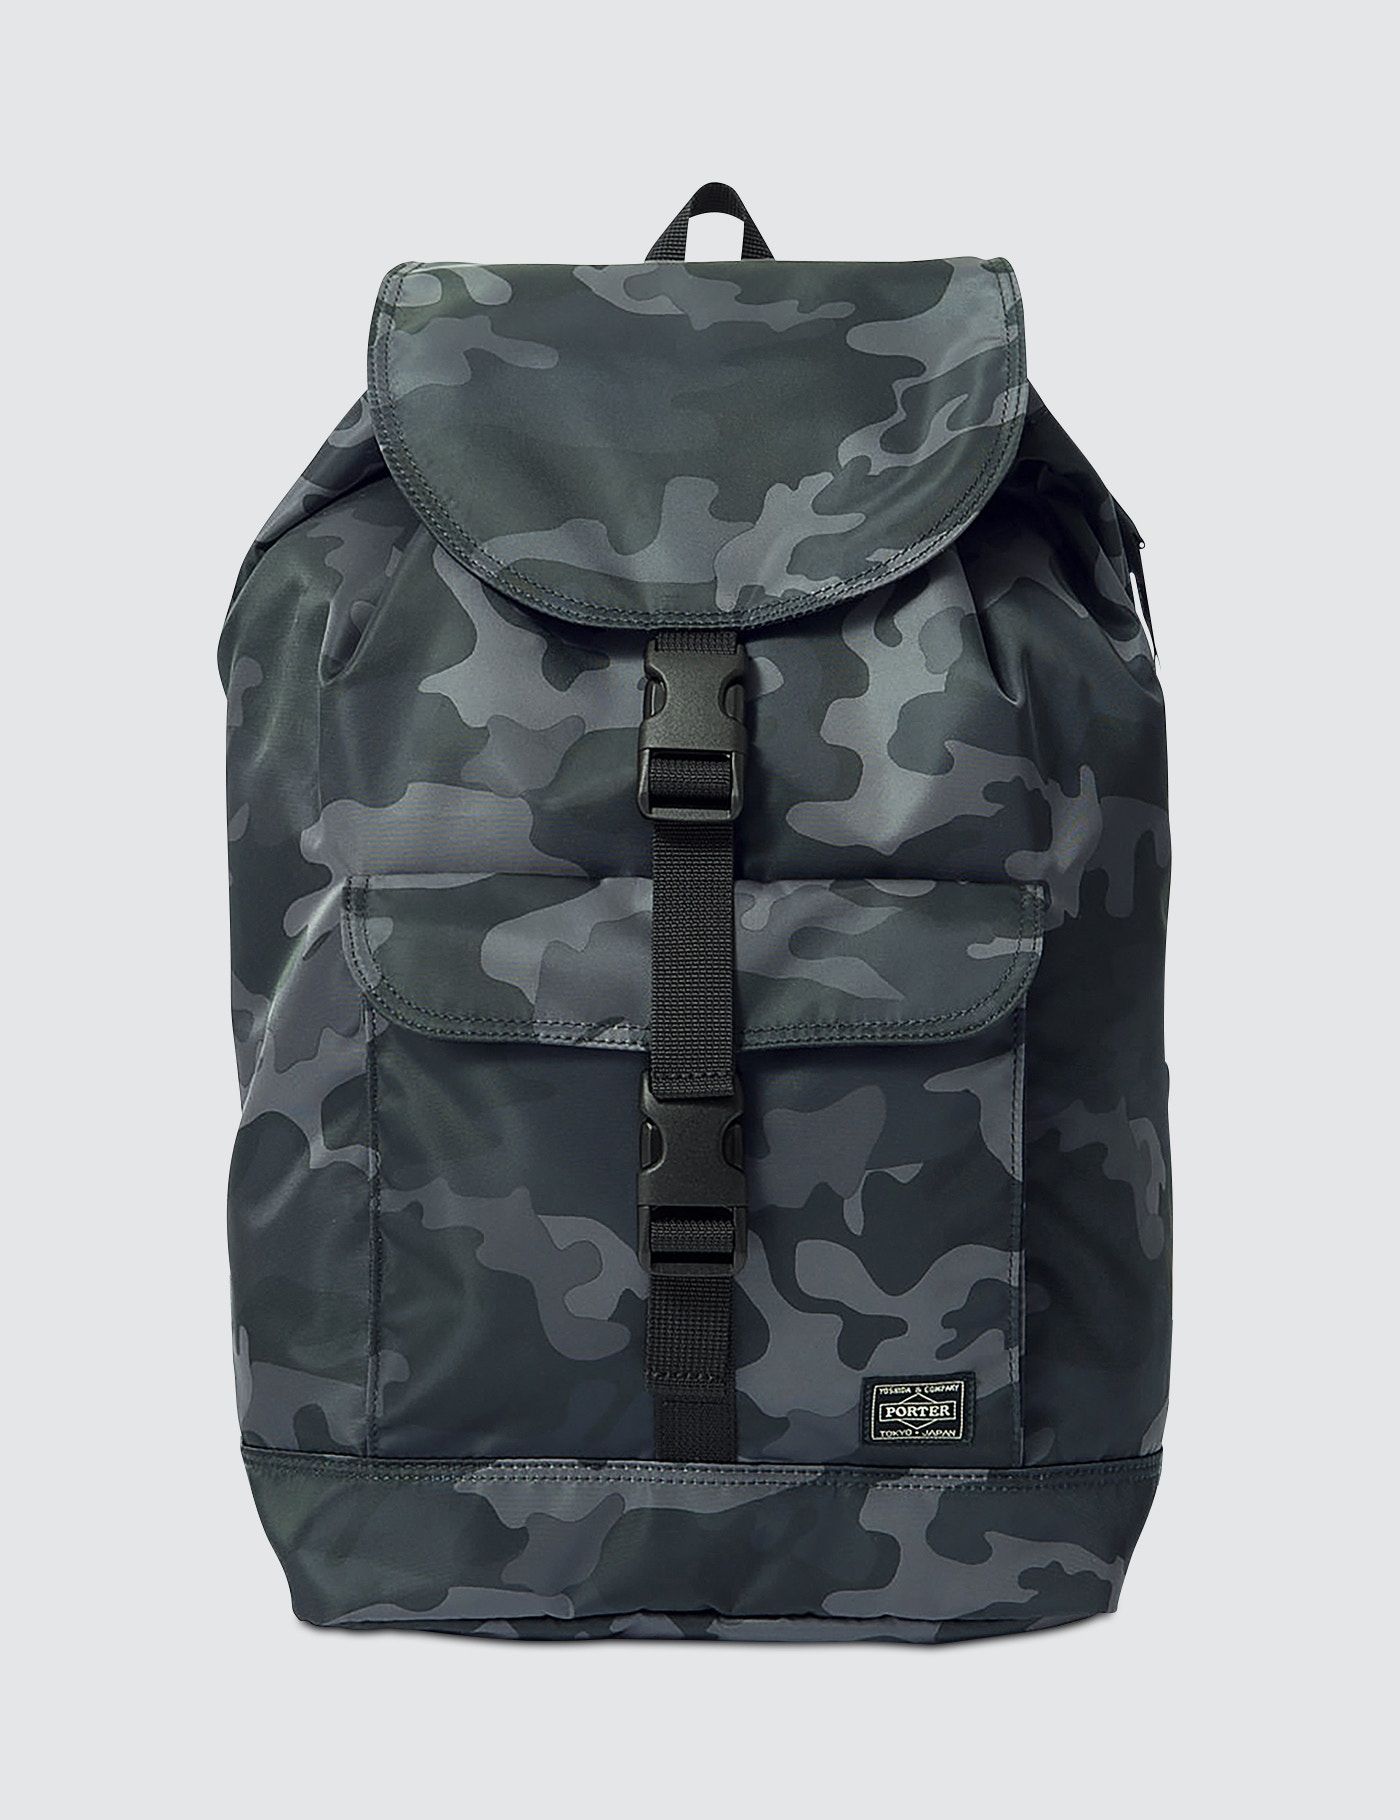 Head Porter Jungle Rucksack  Head Porter Jungle Rucksack ... 9178edb688ed6